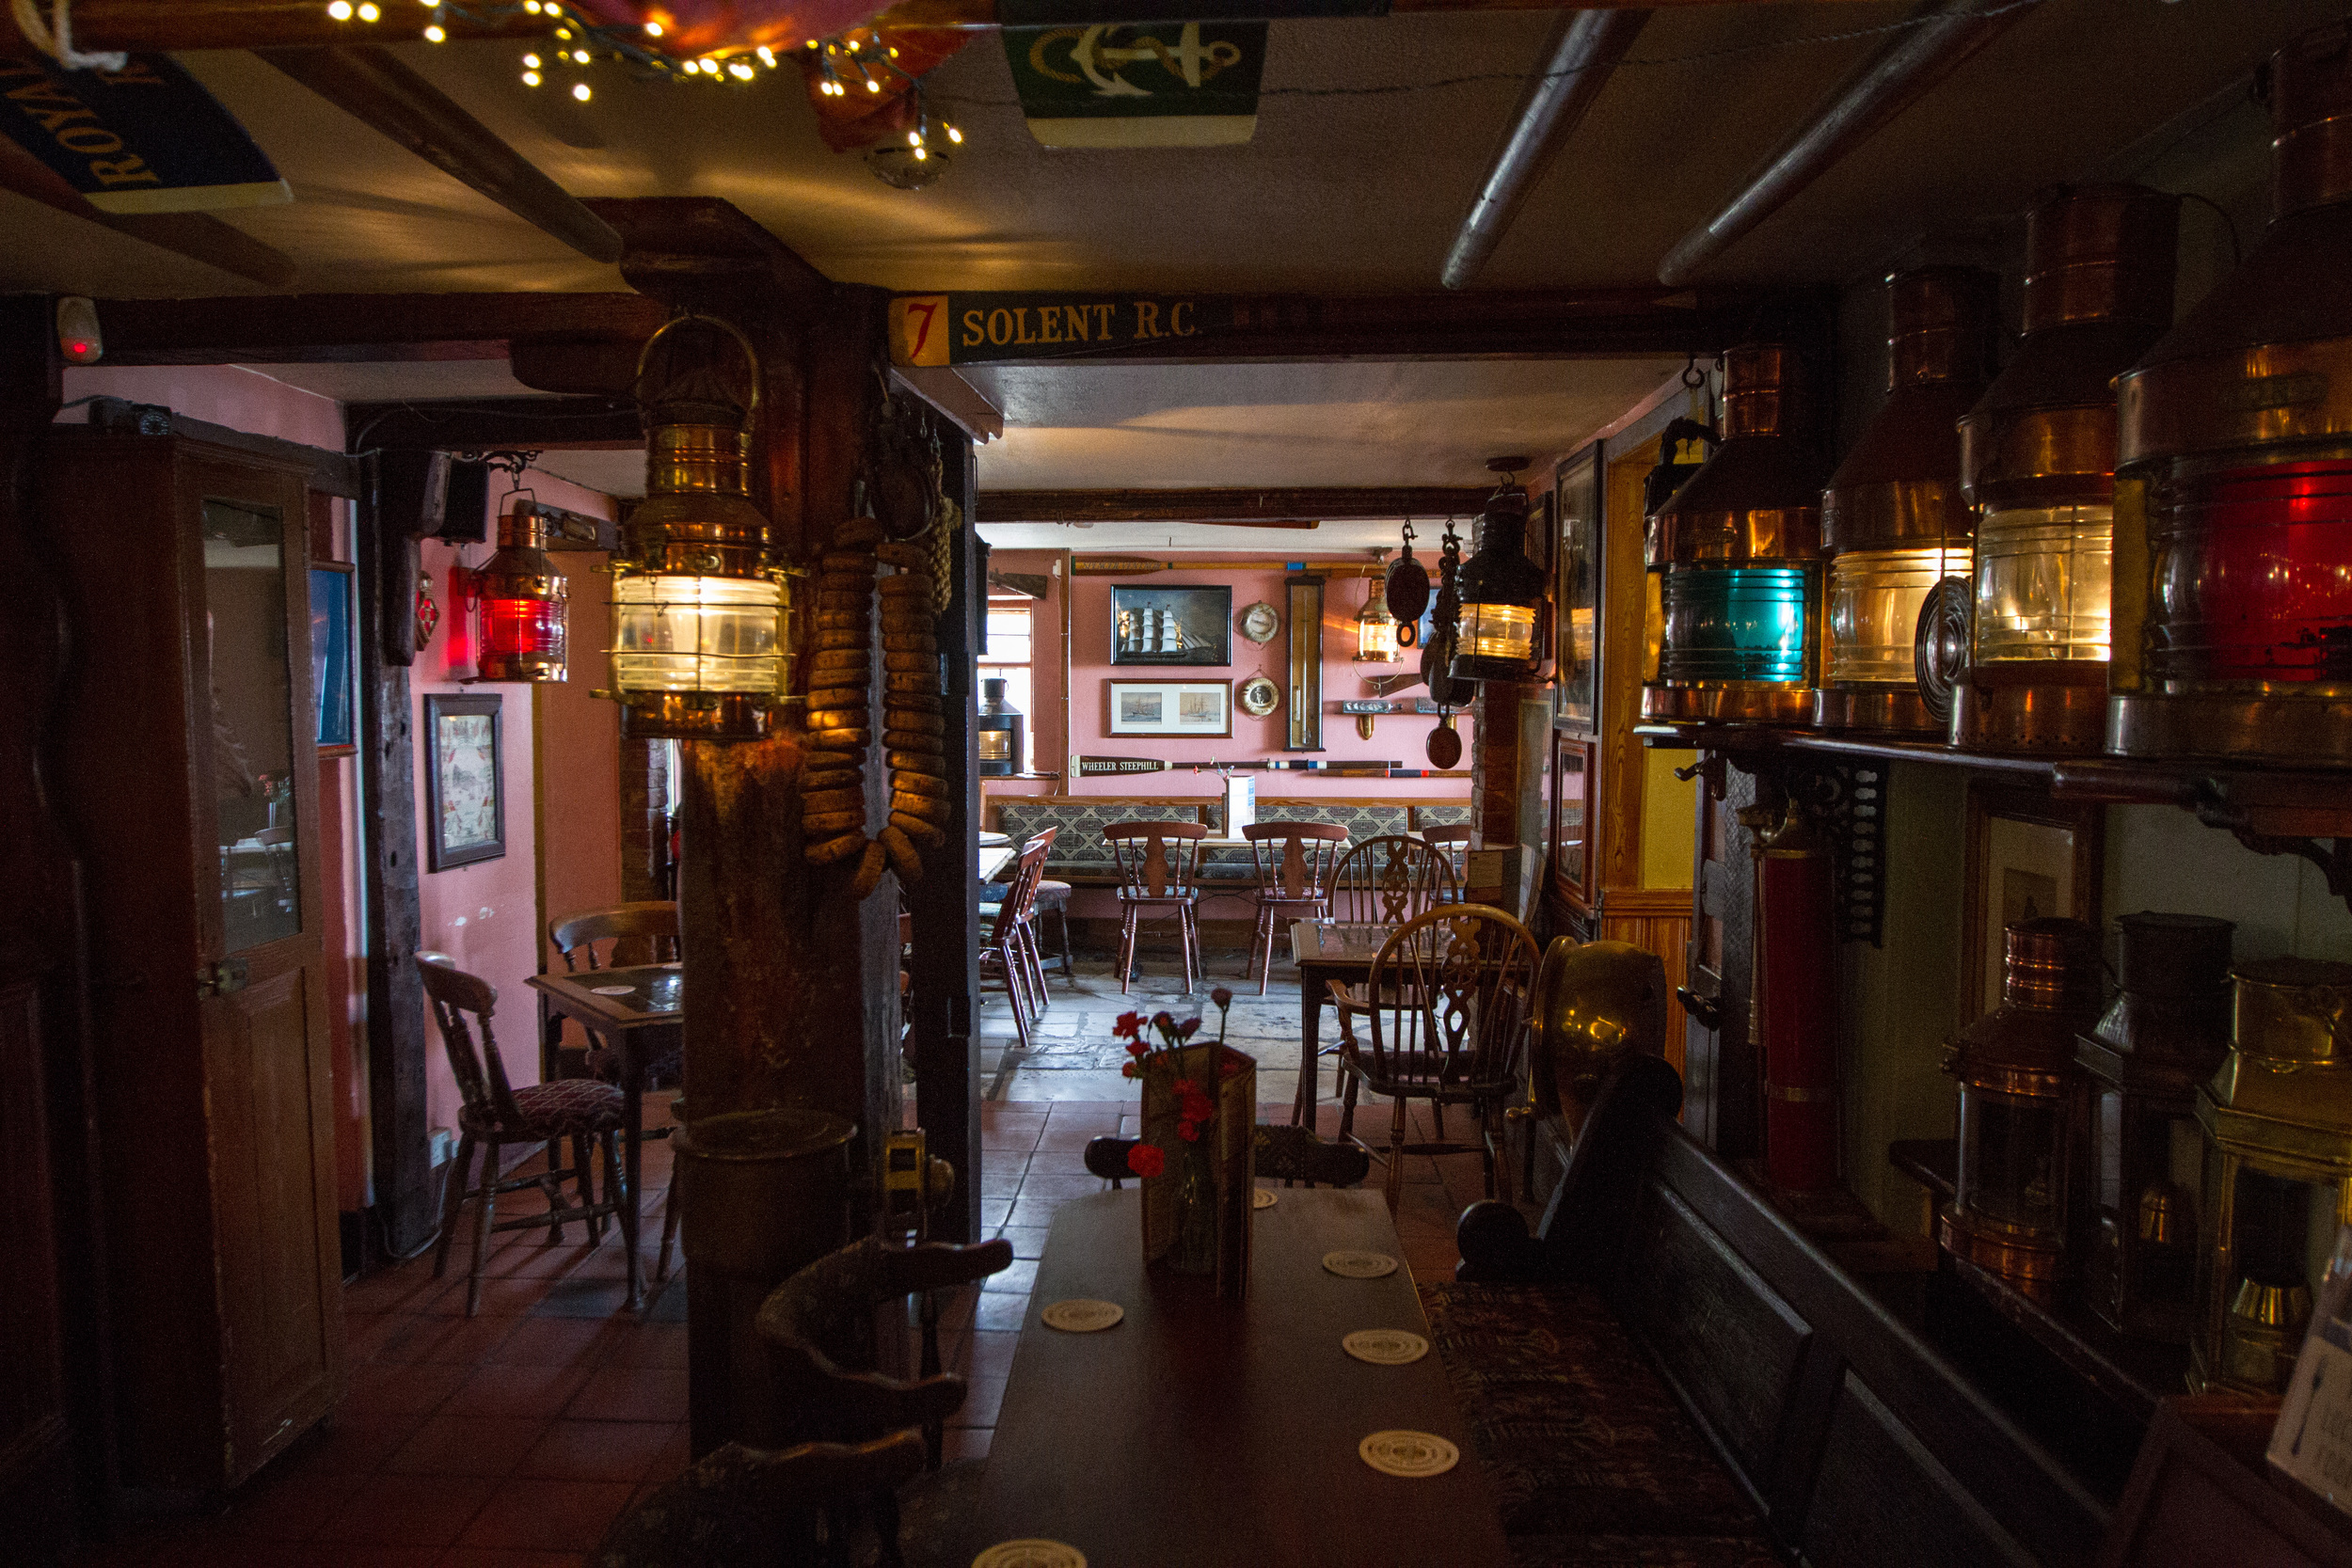 Inside the spyglass.jpghttps://www.flickr.com/photos/anotherpintplease/27838154902/in/dateposted/